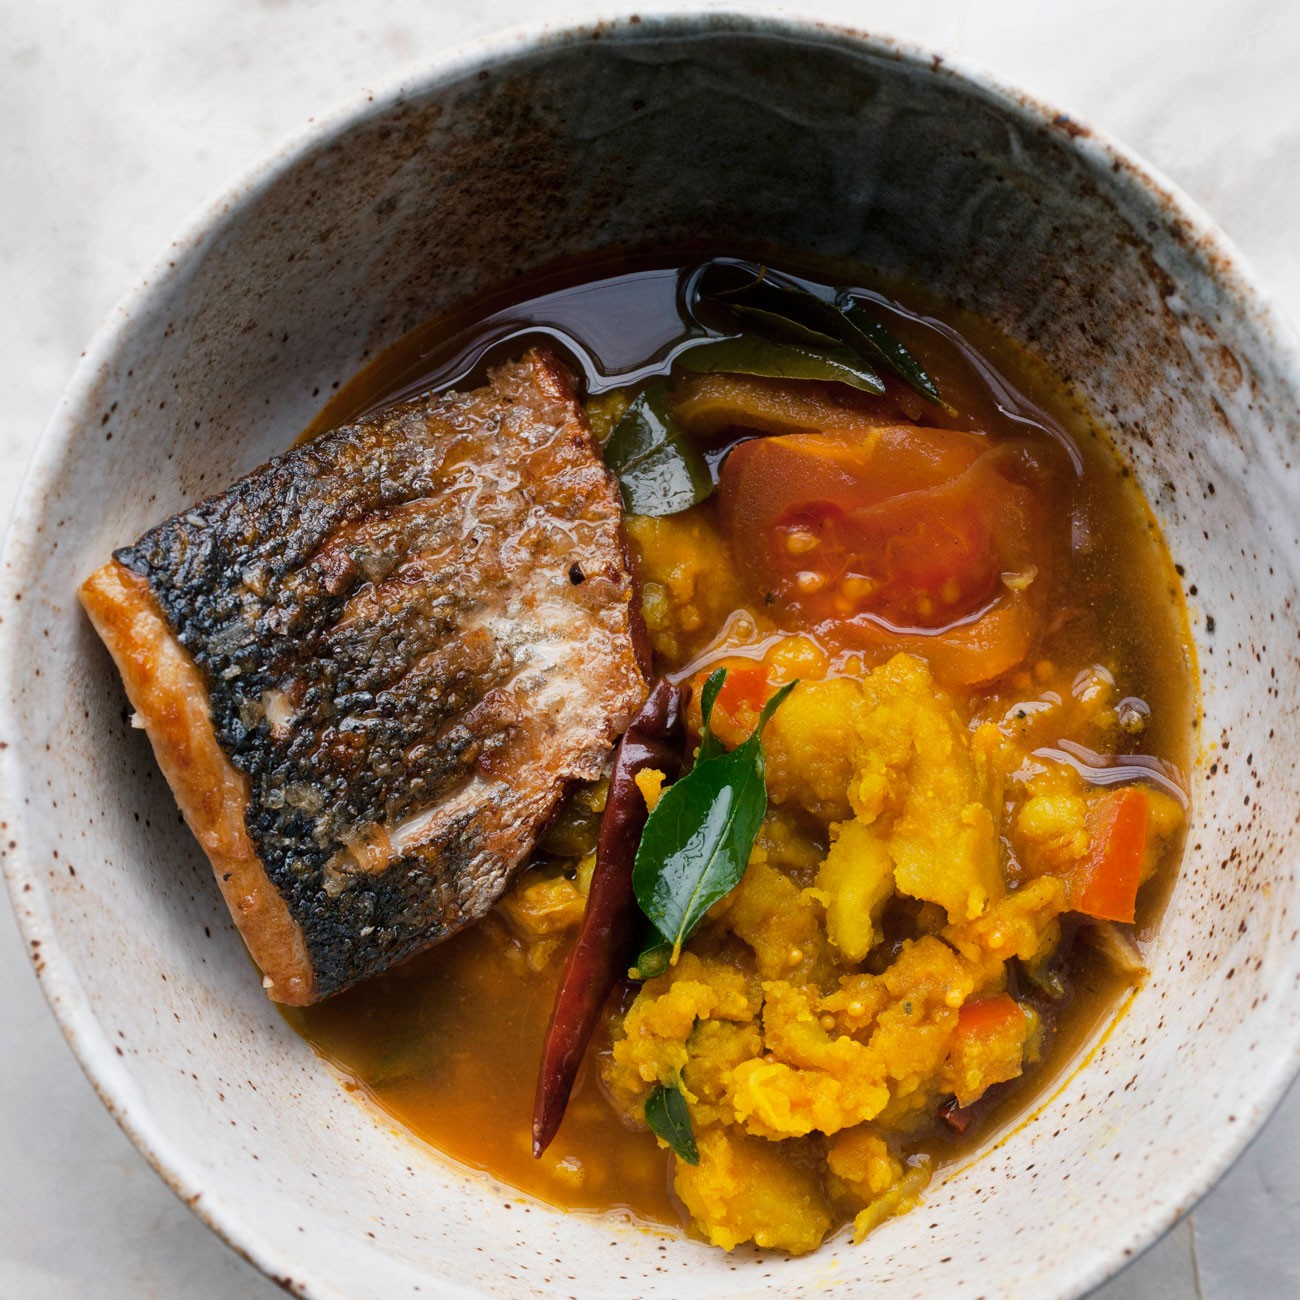 sea-bass-and-turmeric-potatoes-in-rasam-broth-1300x1300_2.jpg